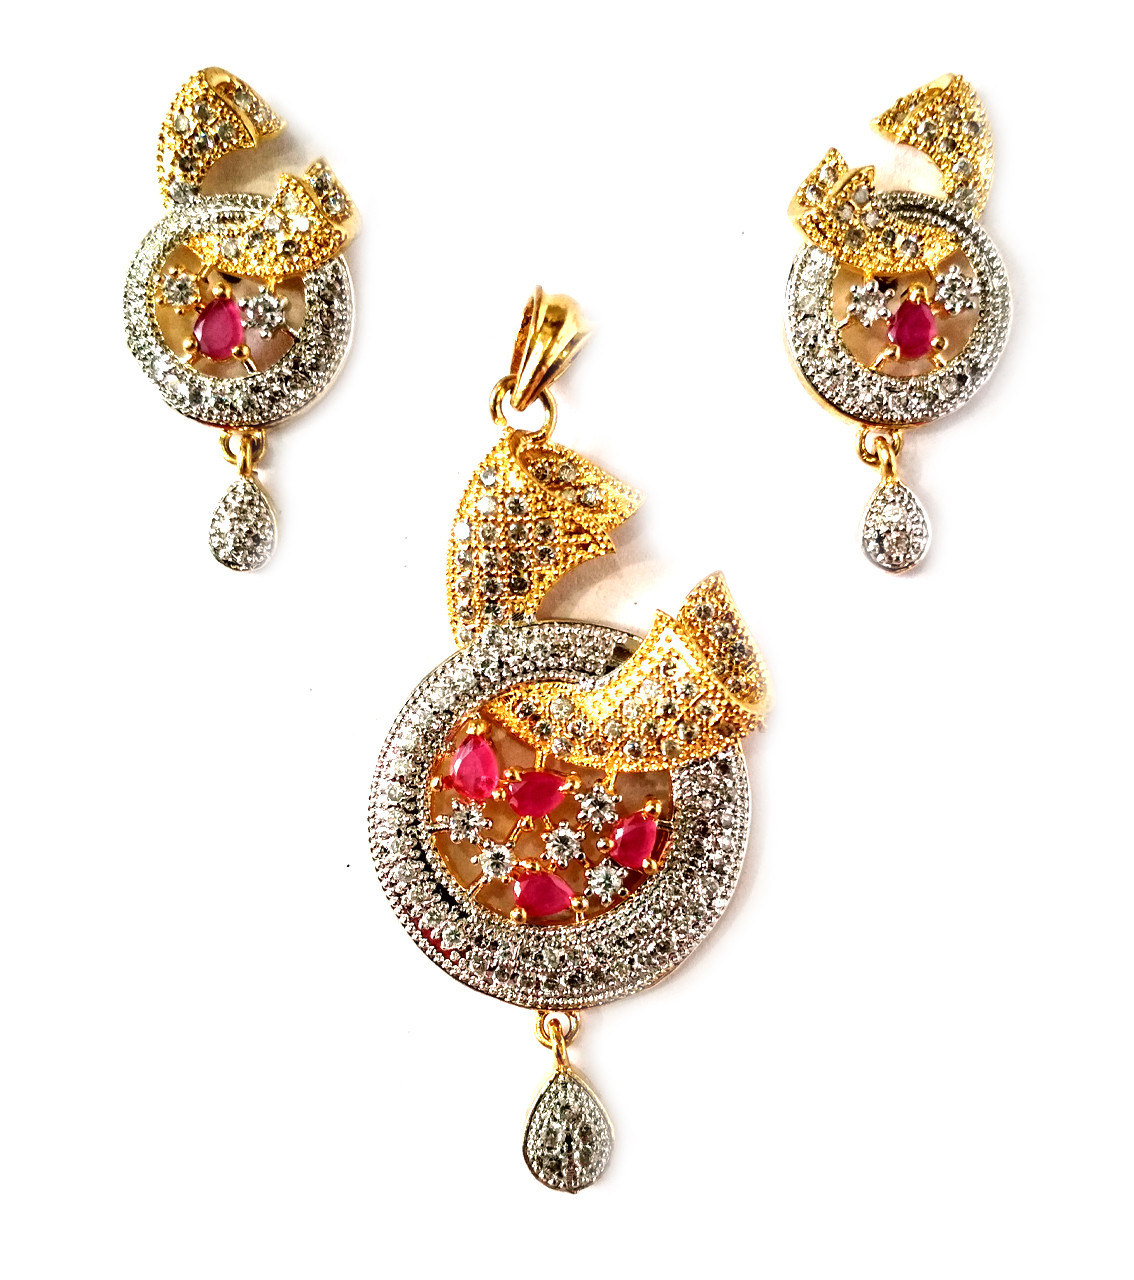 American Diamond Pendant Set With Earrings For Woman & Girls HM031